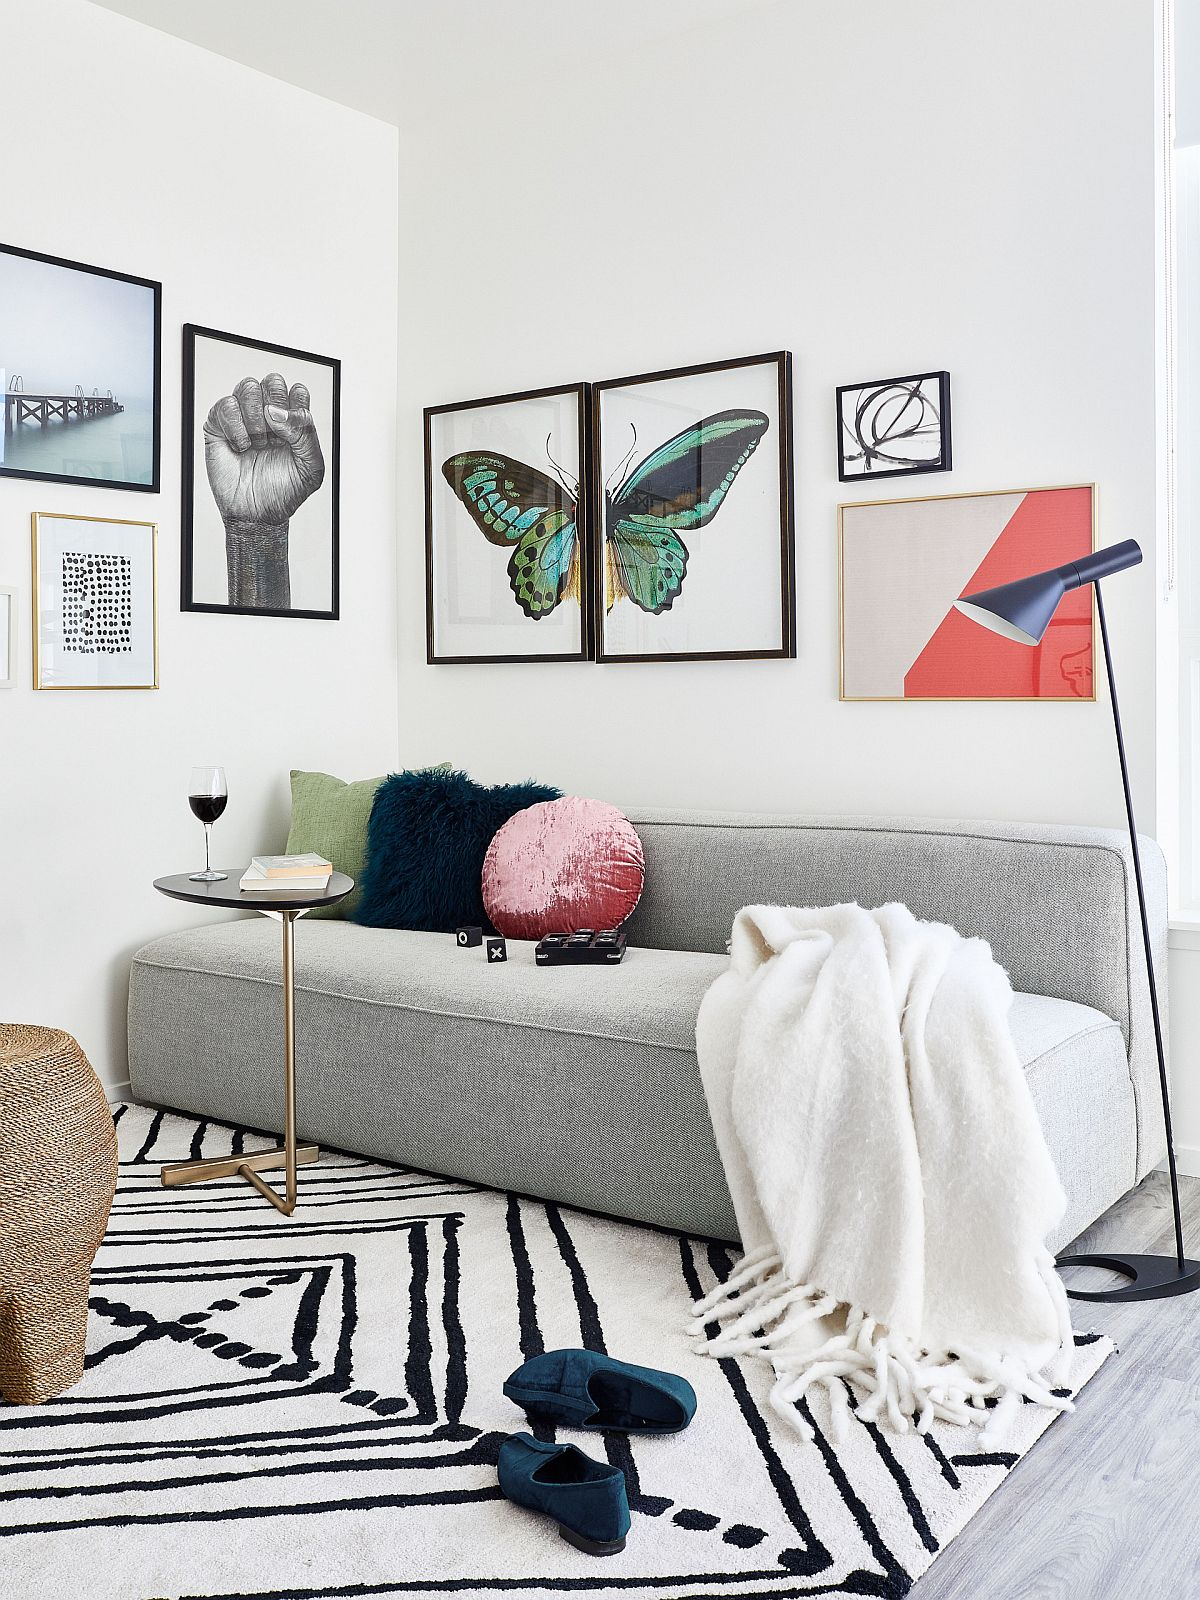 Snazzy rug adds pattern to this small living room without altering its color palette